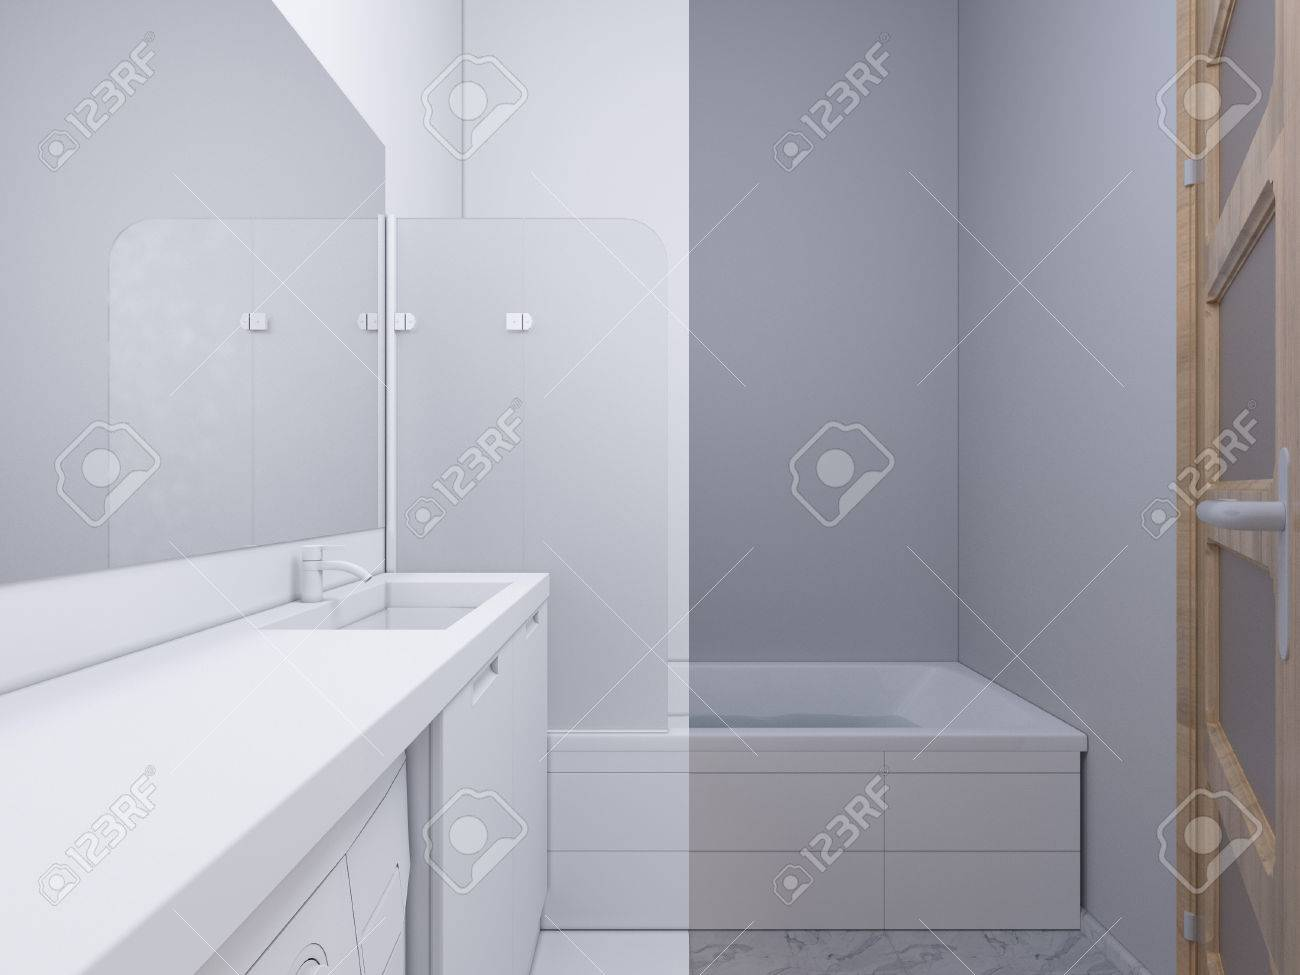 3d Render Collage Of Interior Design Bathroom. The Illustration ...